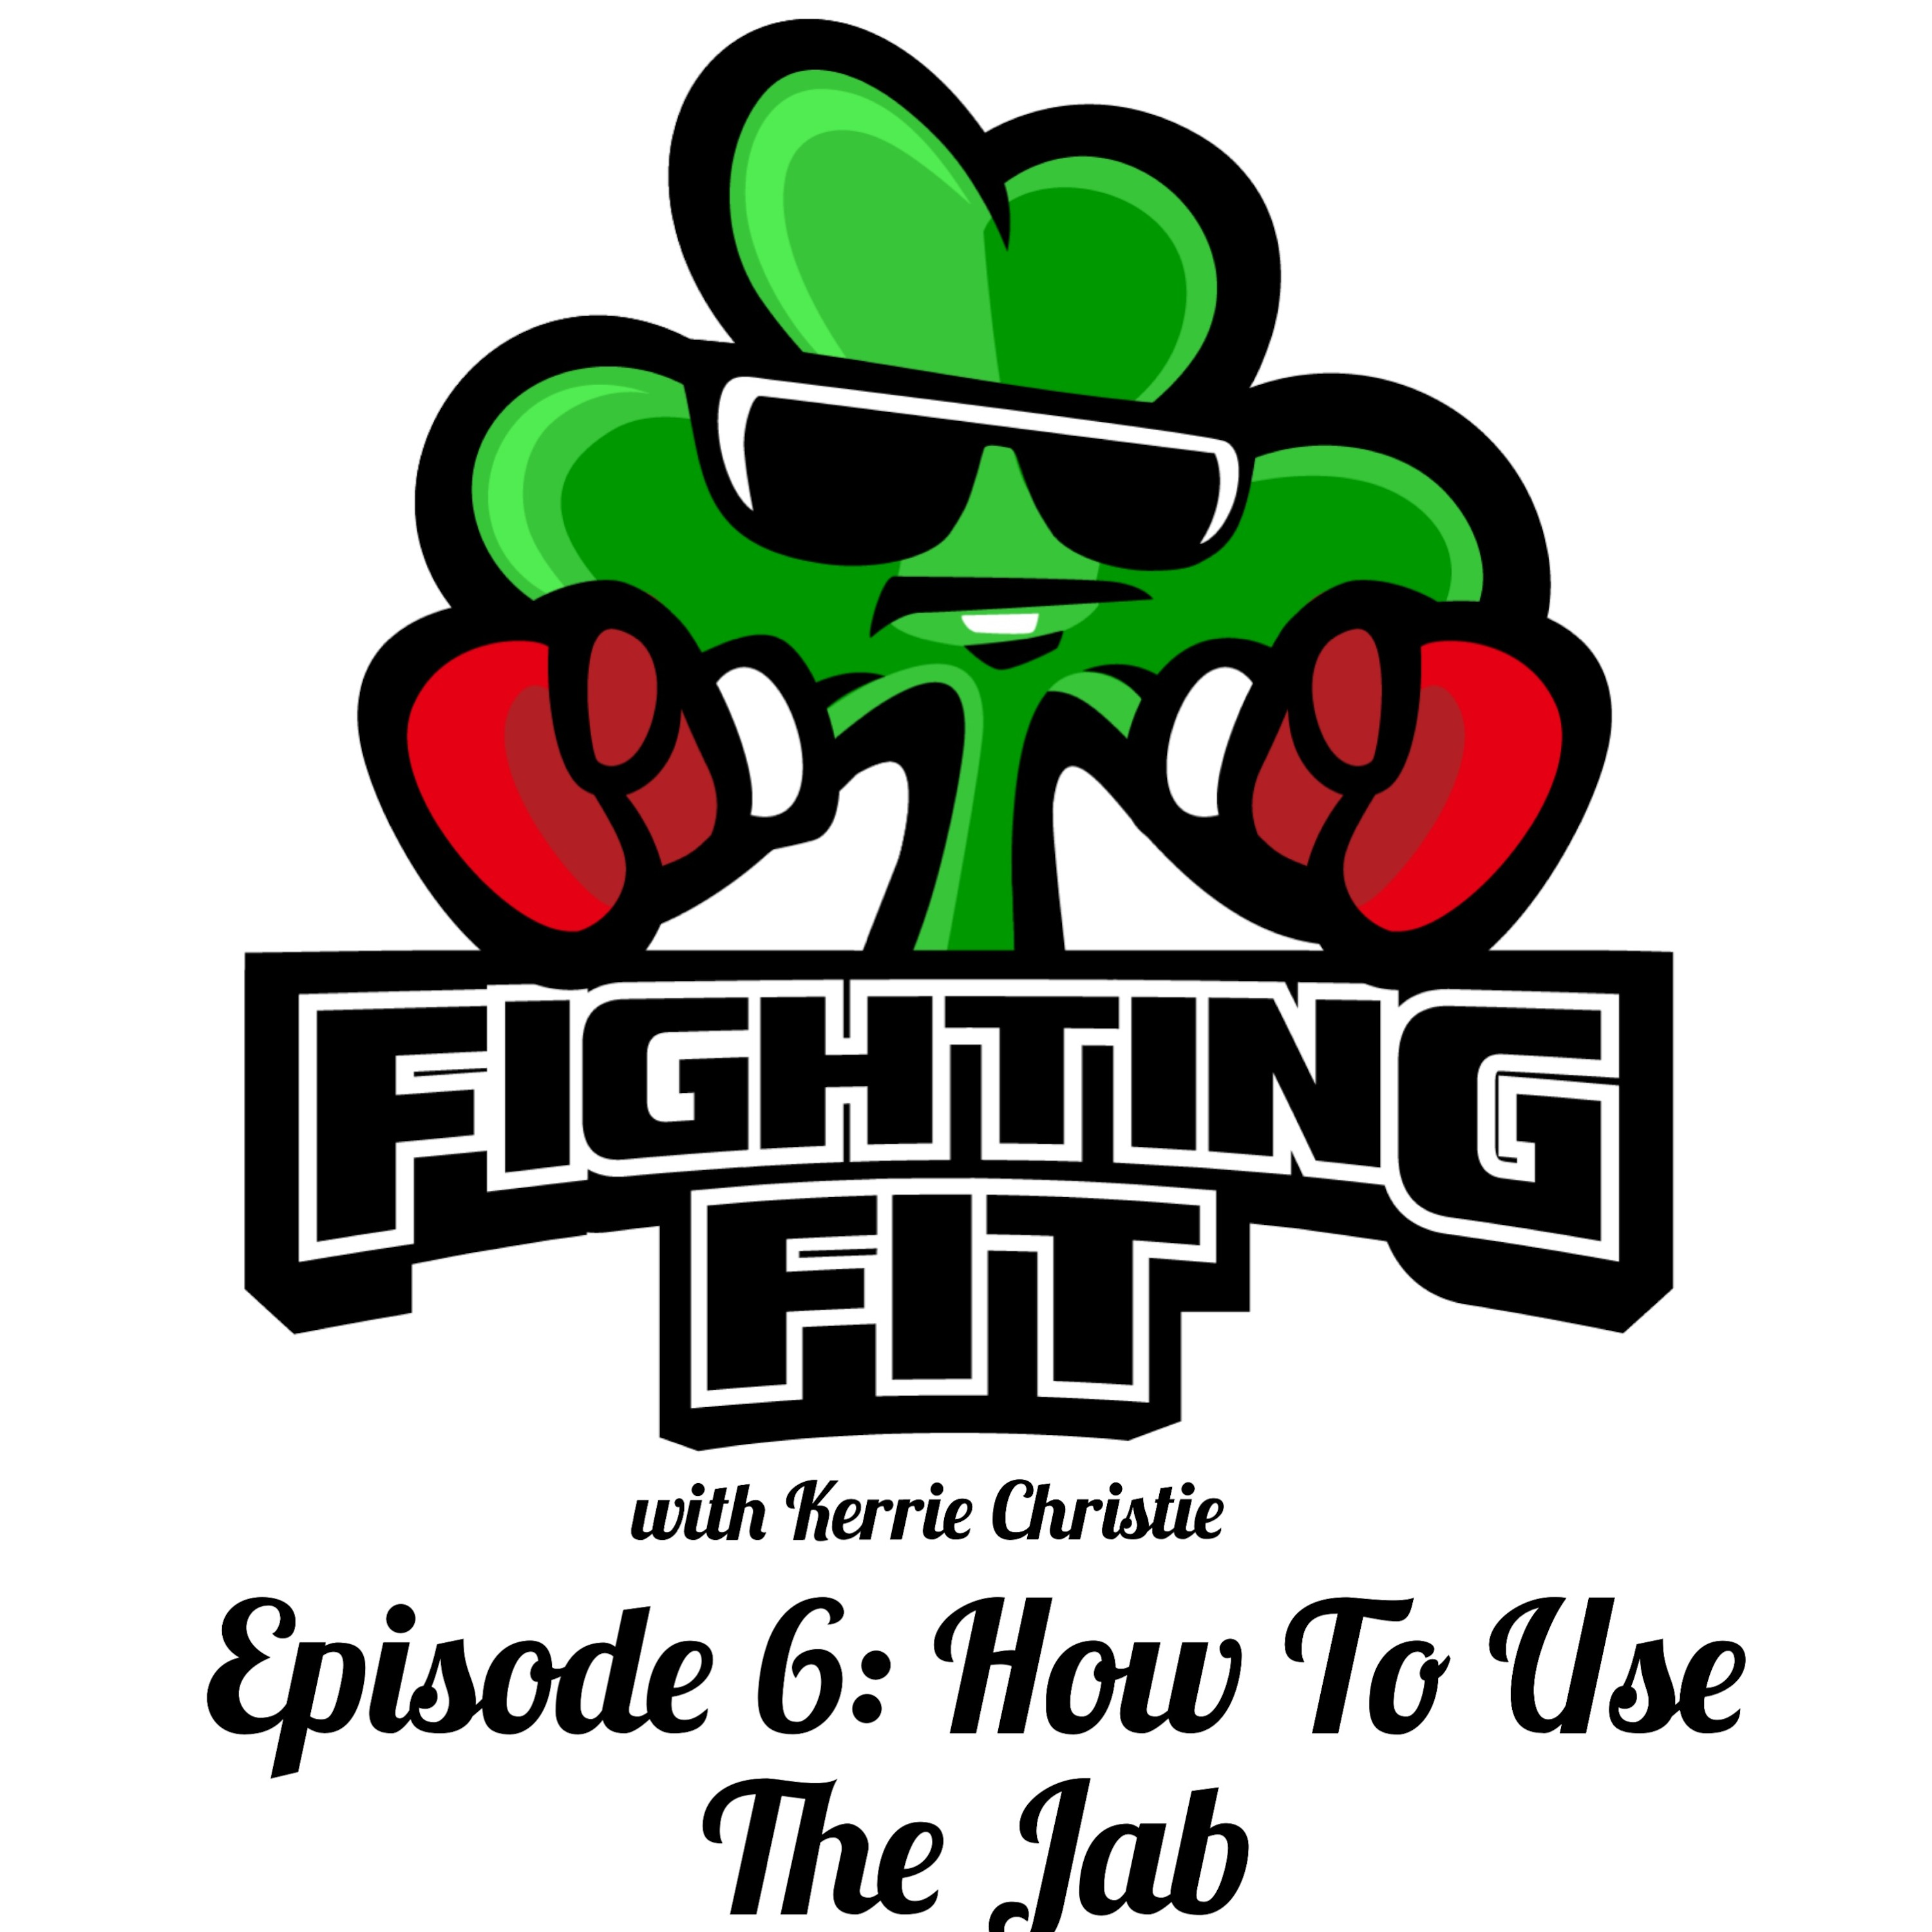 Fighting Fit with Kerrie Christie - Episode 6: How To Use The Jab